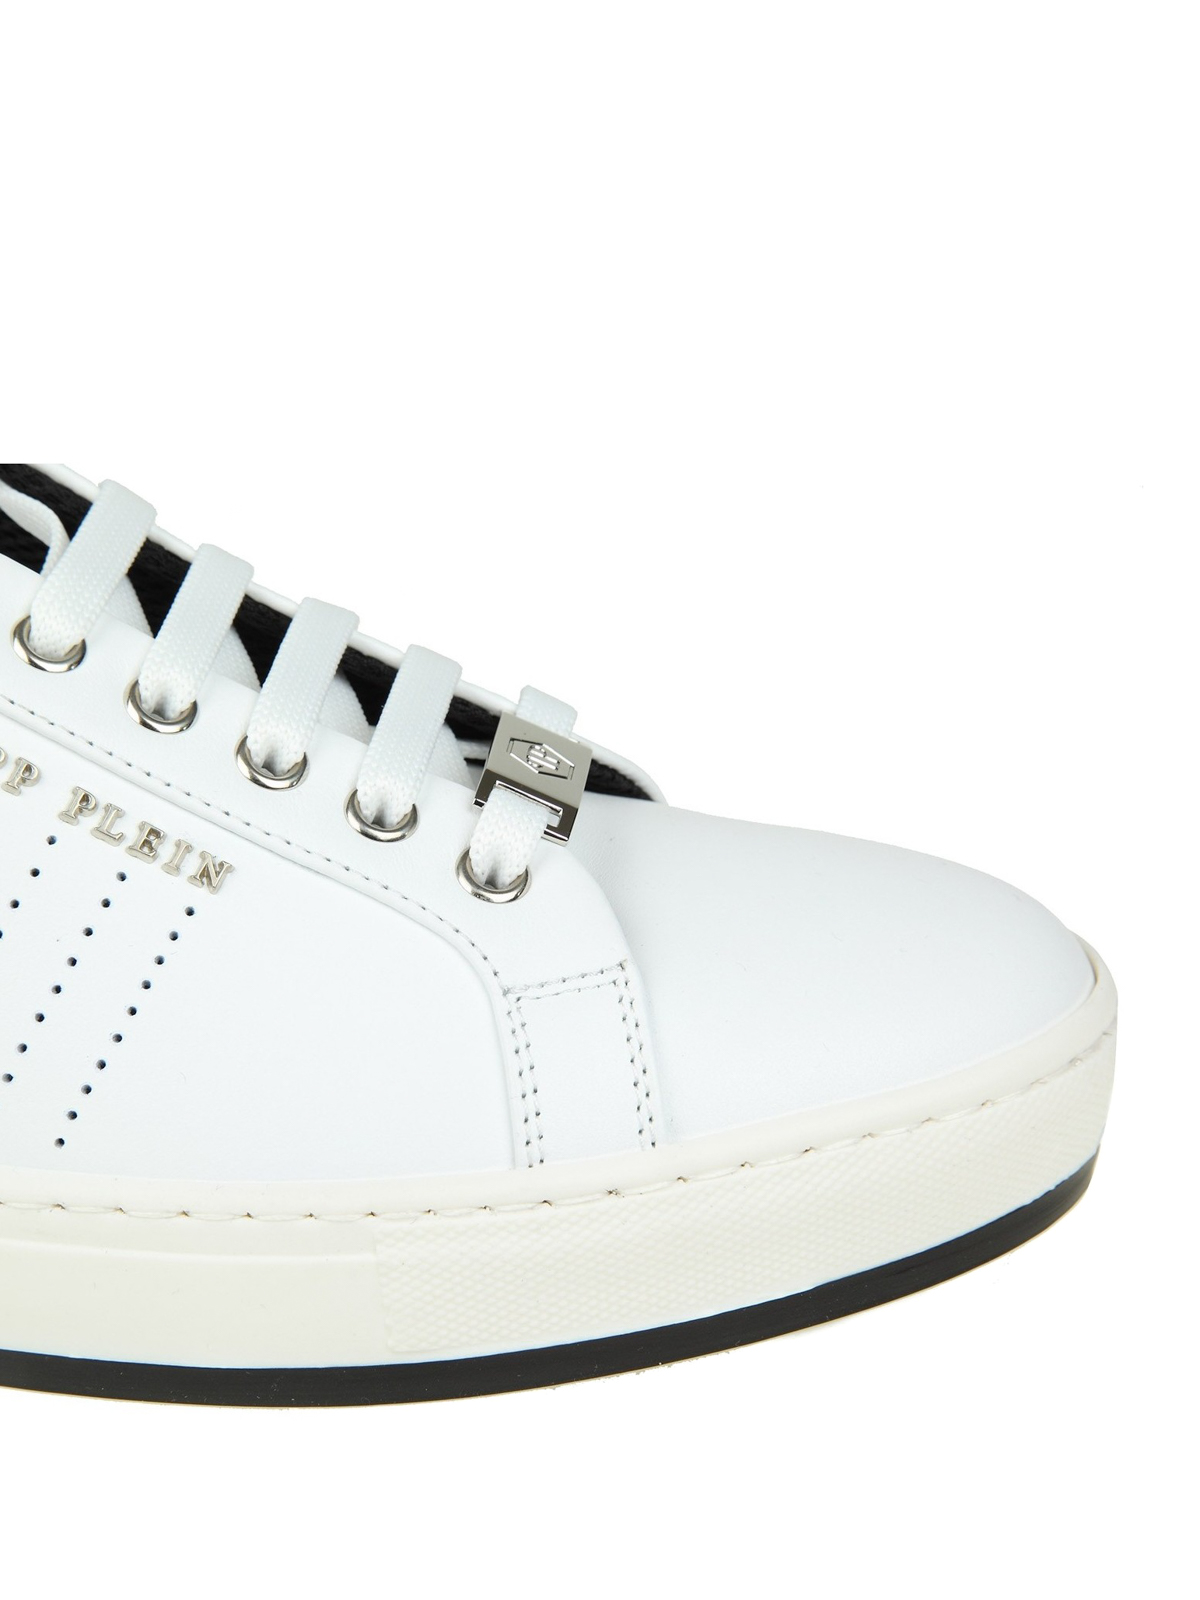 Another Night sneakers with skull Philipp Plein iA19VbLIf